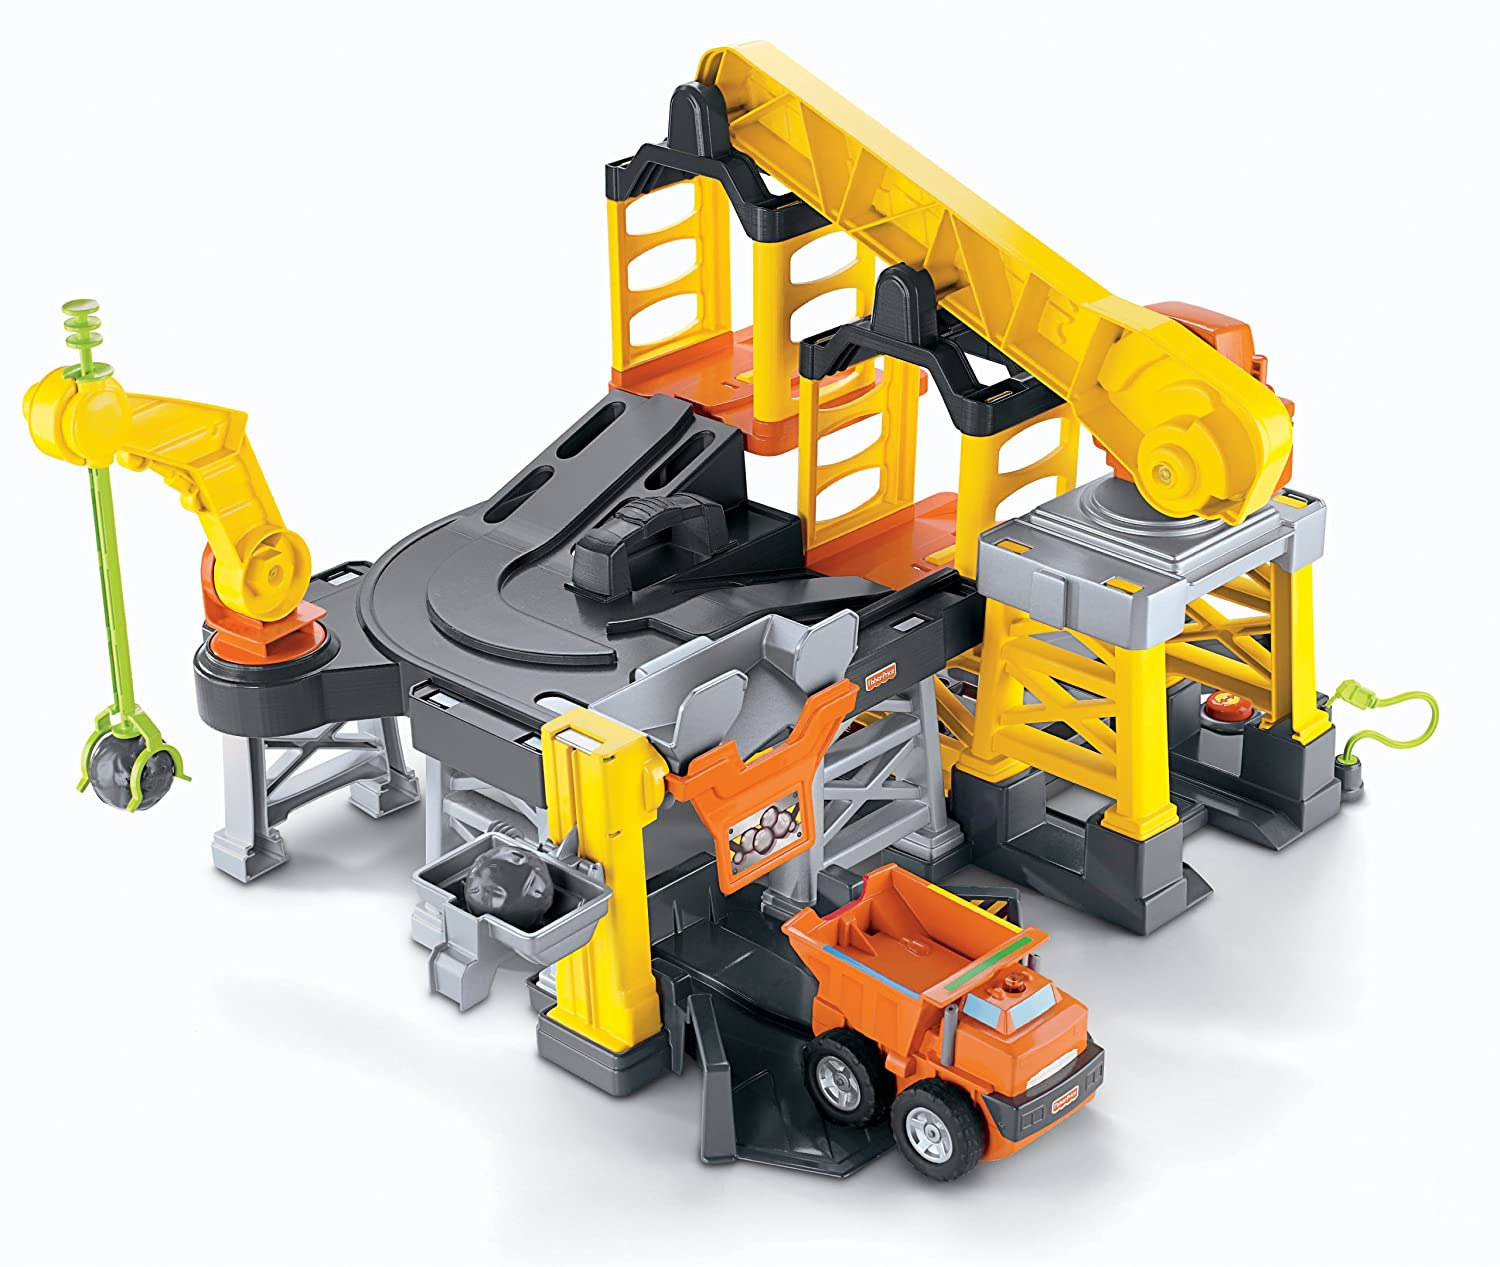 Regret, fisher price construction toys are absolutely